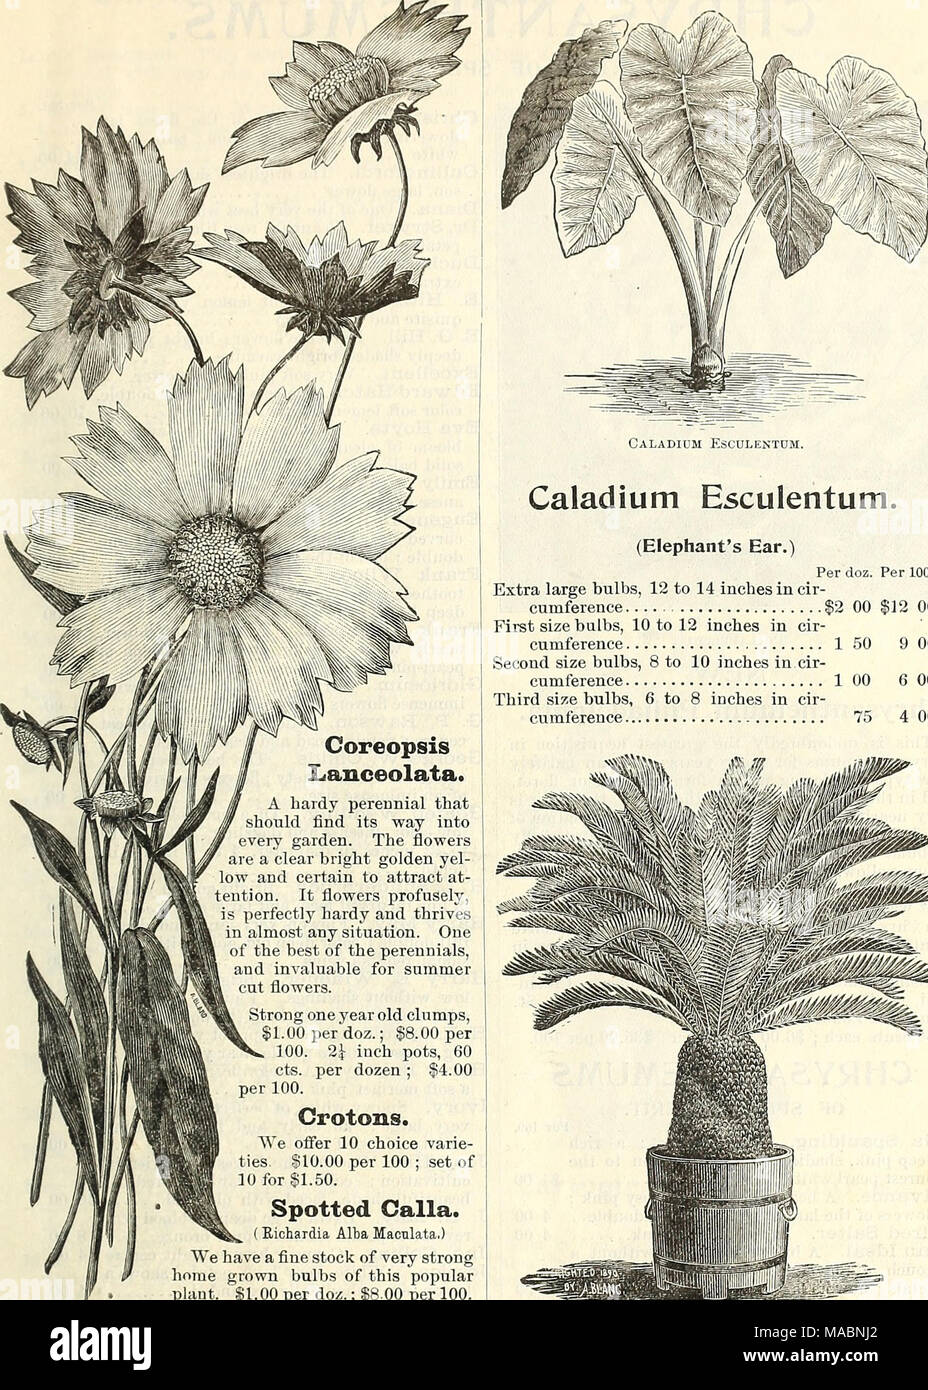 Dreers quarterly wholesale price list of seeds plants c winter dreers quarterly wholesale price list of seeds plants c winter edition january 1895 march coreopsis lanceolata a hardy perennial that should find mightylinksfo